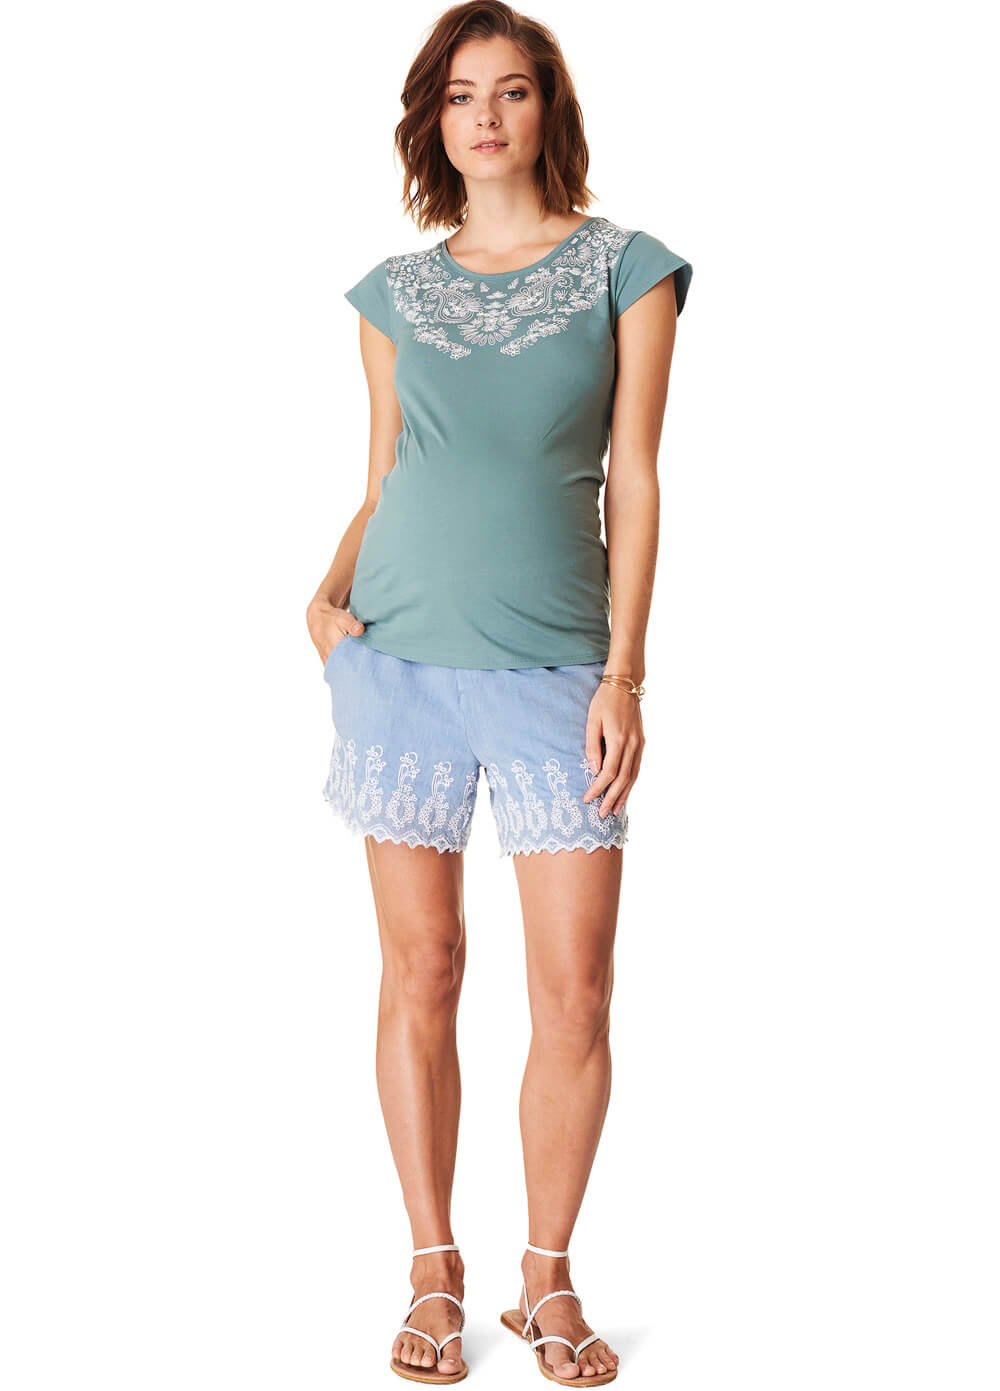 Embroidered Cotton Maternity Shorts in Blue by Esprit